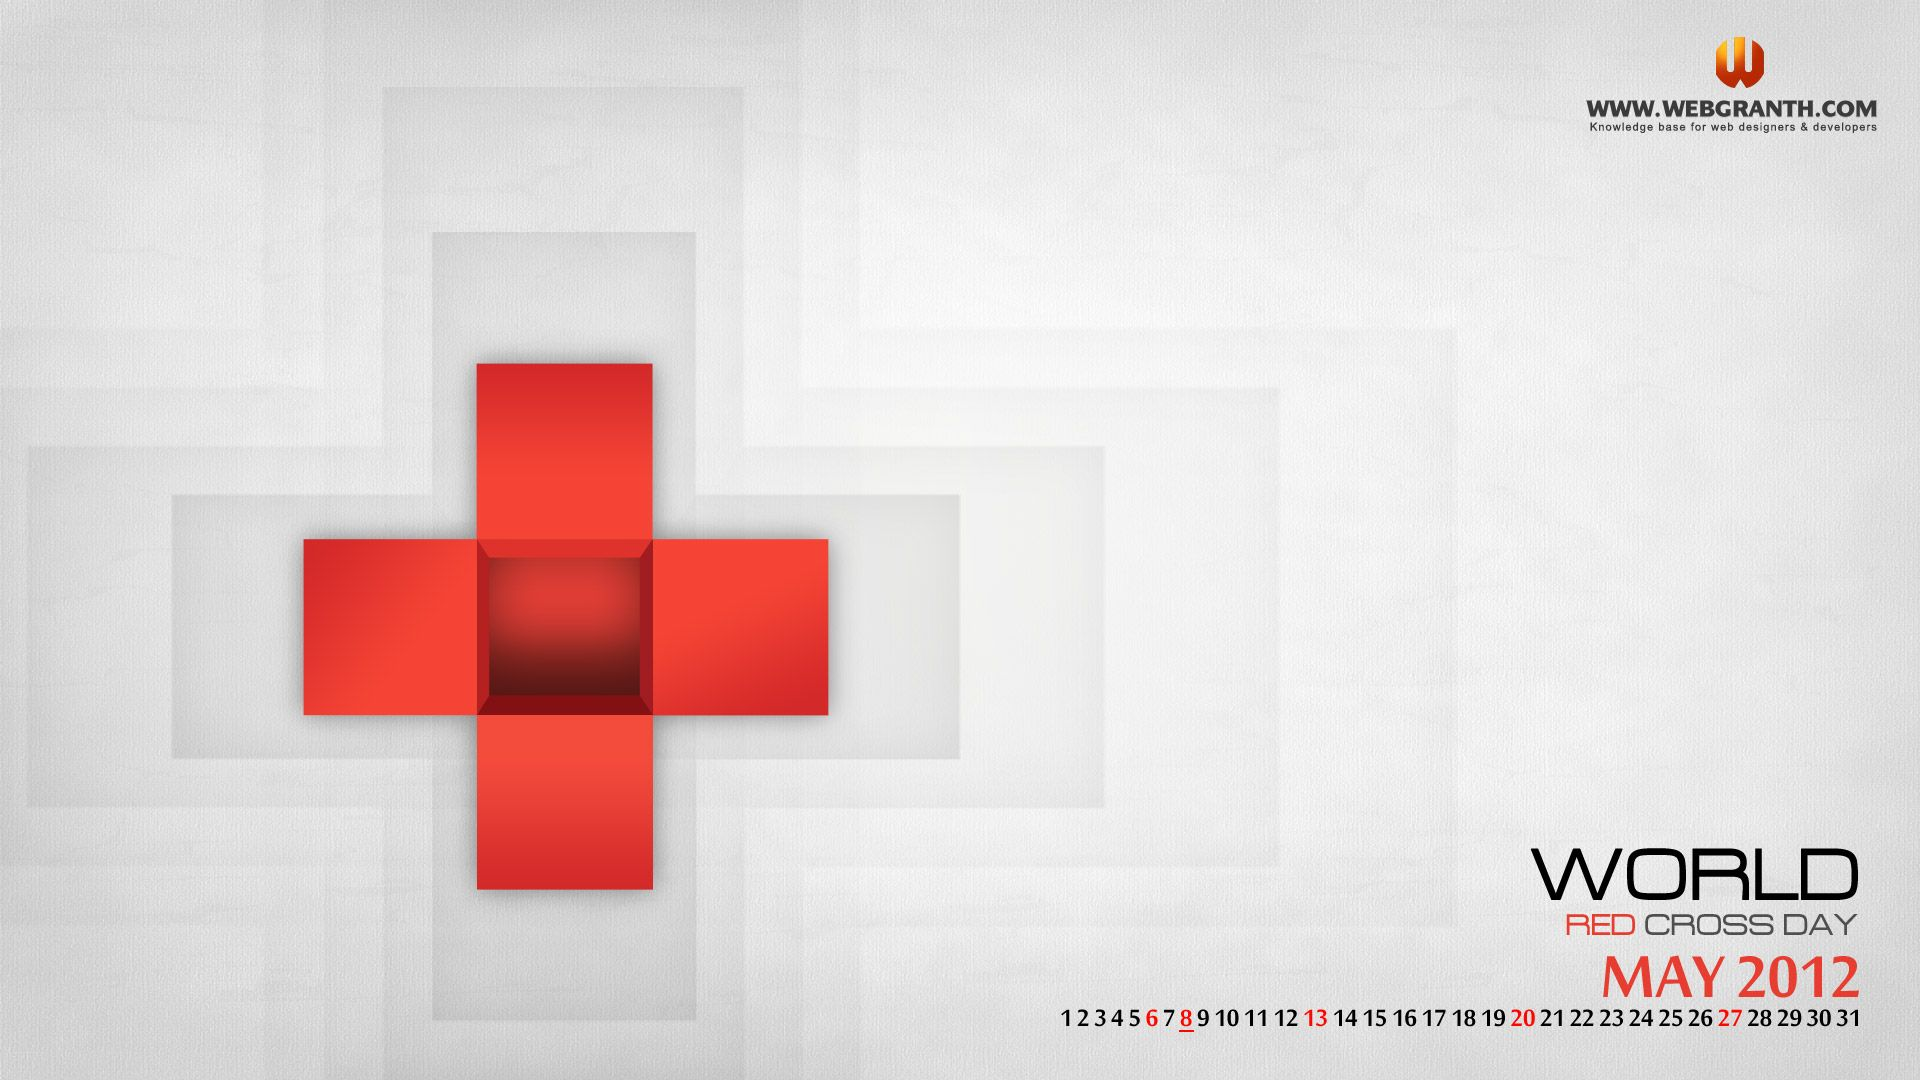 red cross wallpaper  Free-Download-World-Red-Cross-Day-Wallpaper.jpg (1920×1080 ...